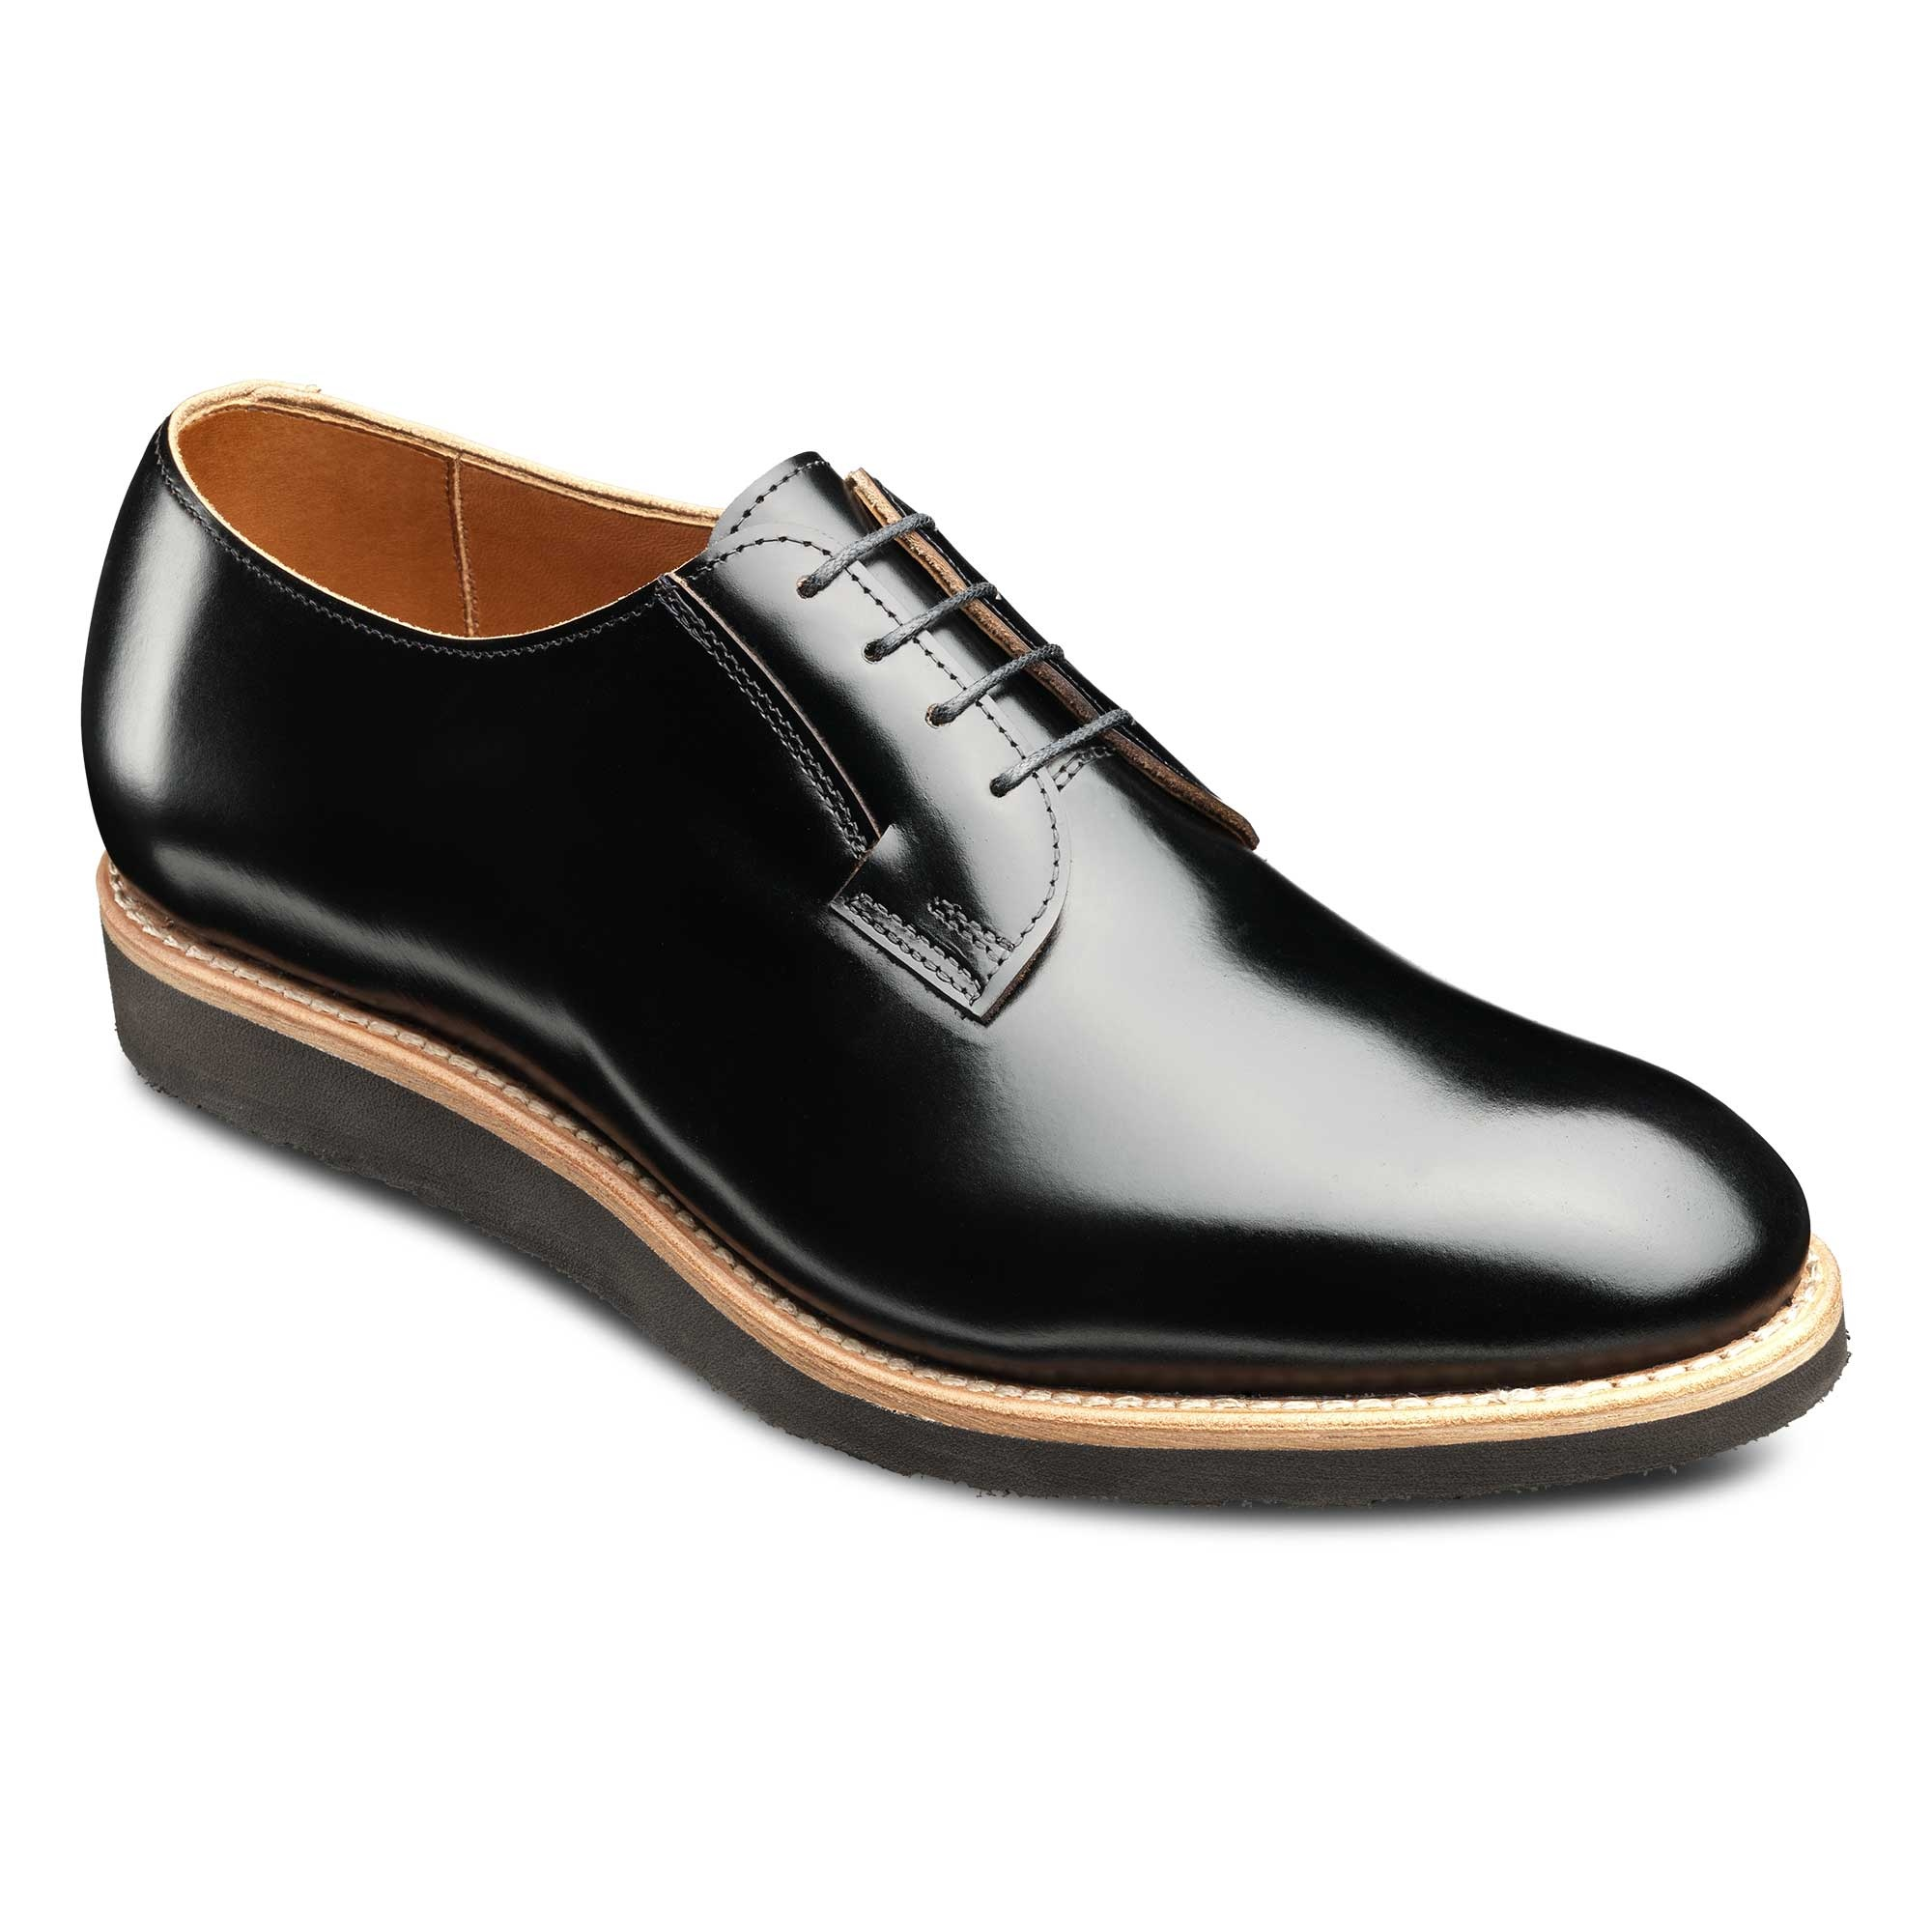 c0c383e76a77 Union Plain Toe Blucher